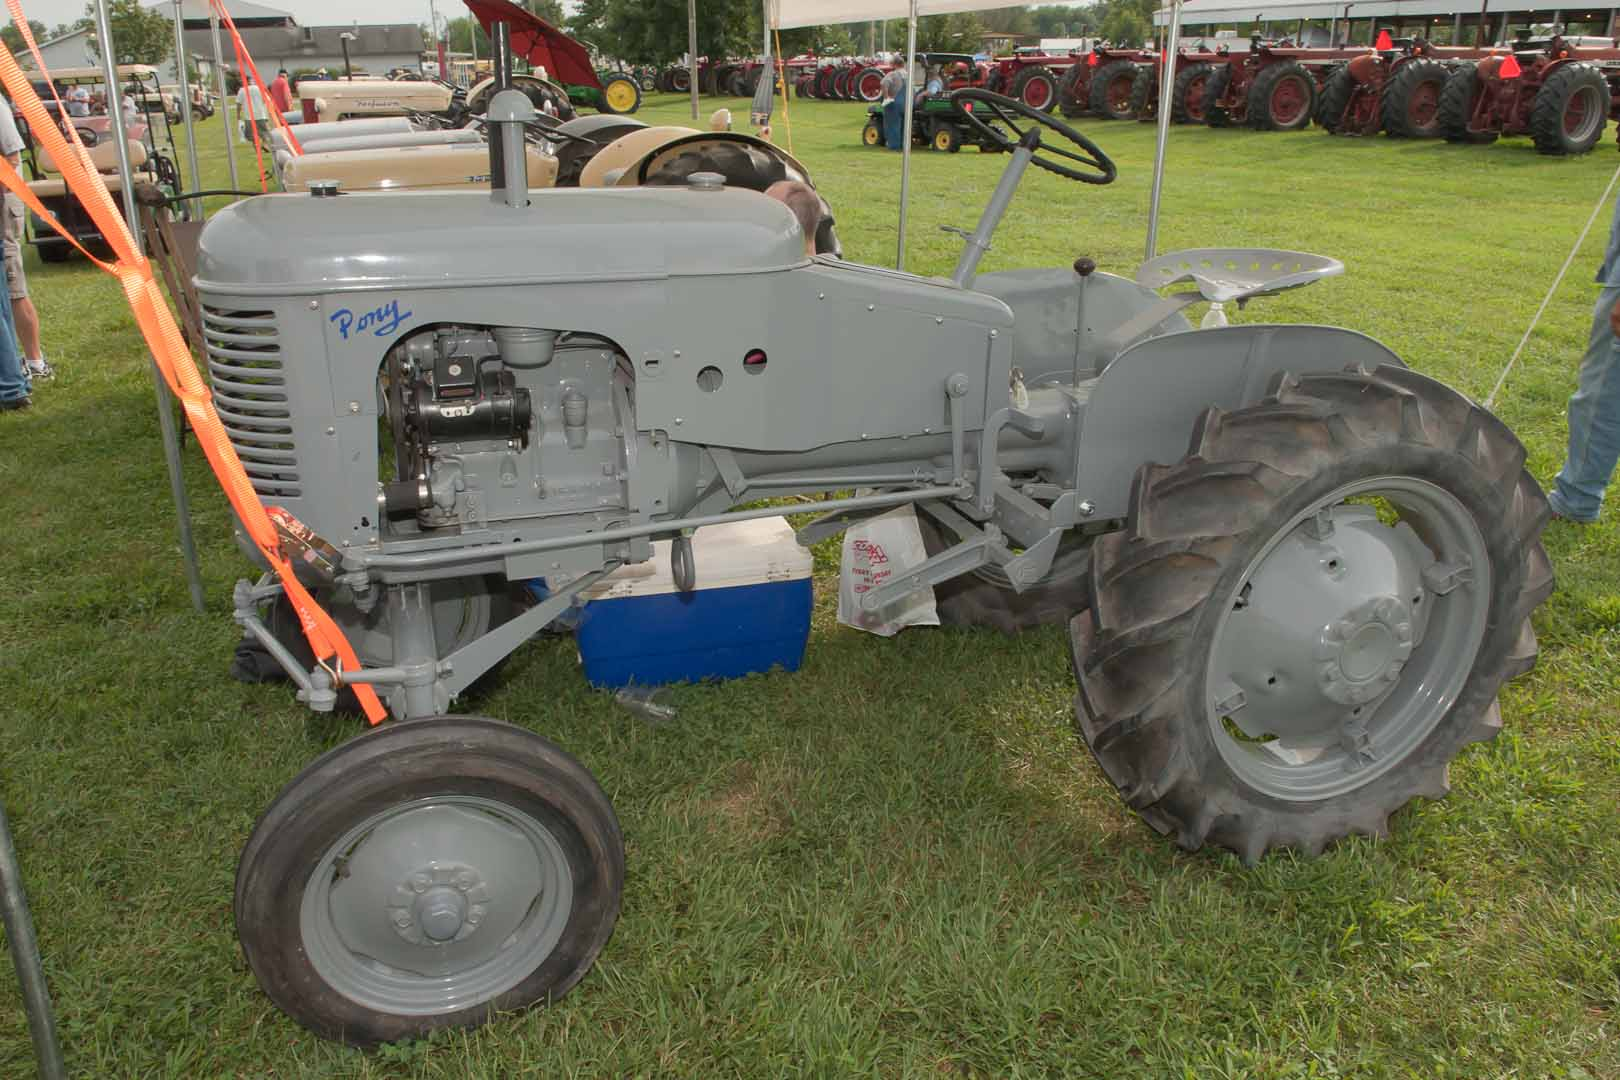 """1954 Ferguson Pony owned by Sonna Wente of Seymour, IN.  """"My first tractor""""."""